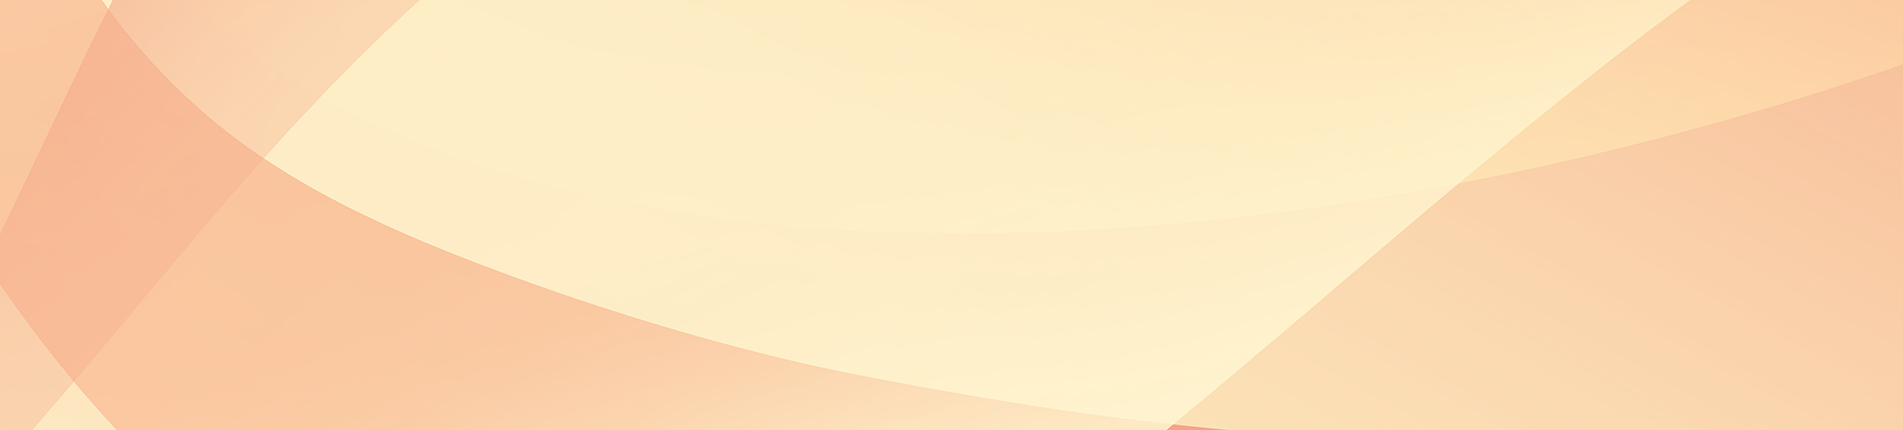 orange-background1